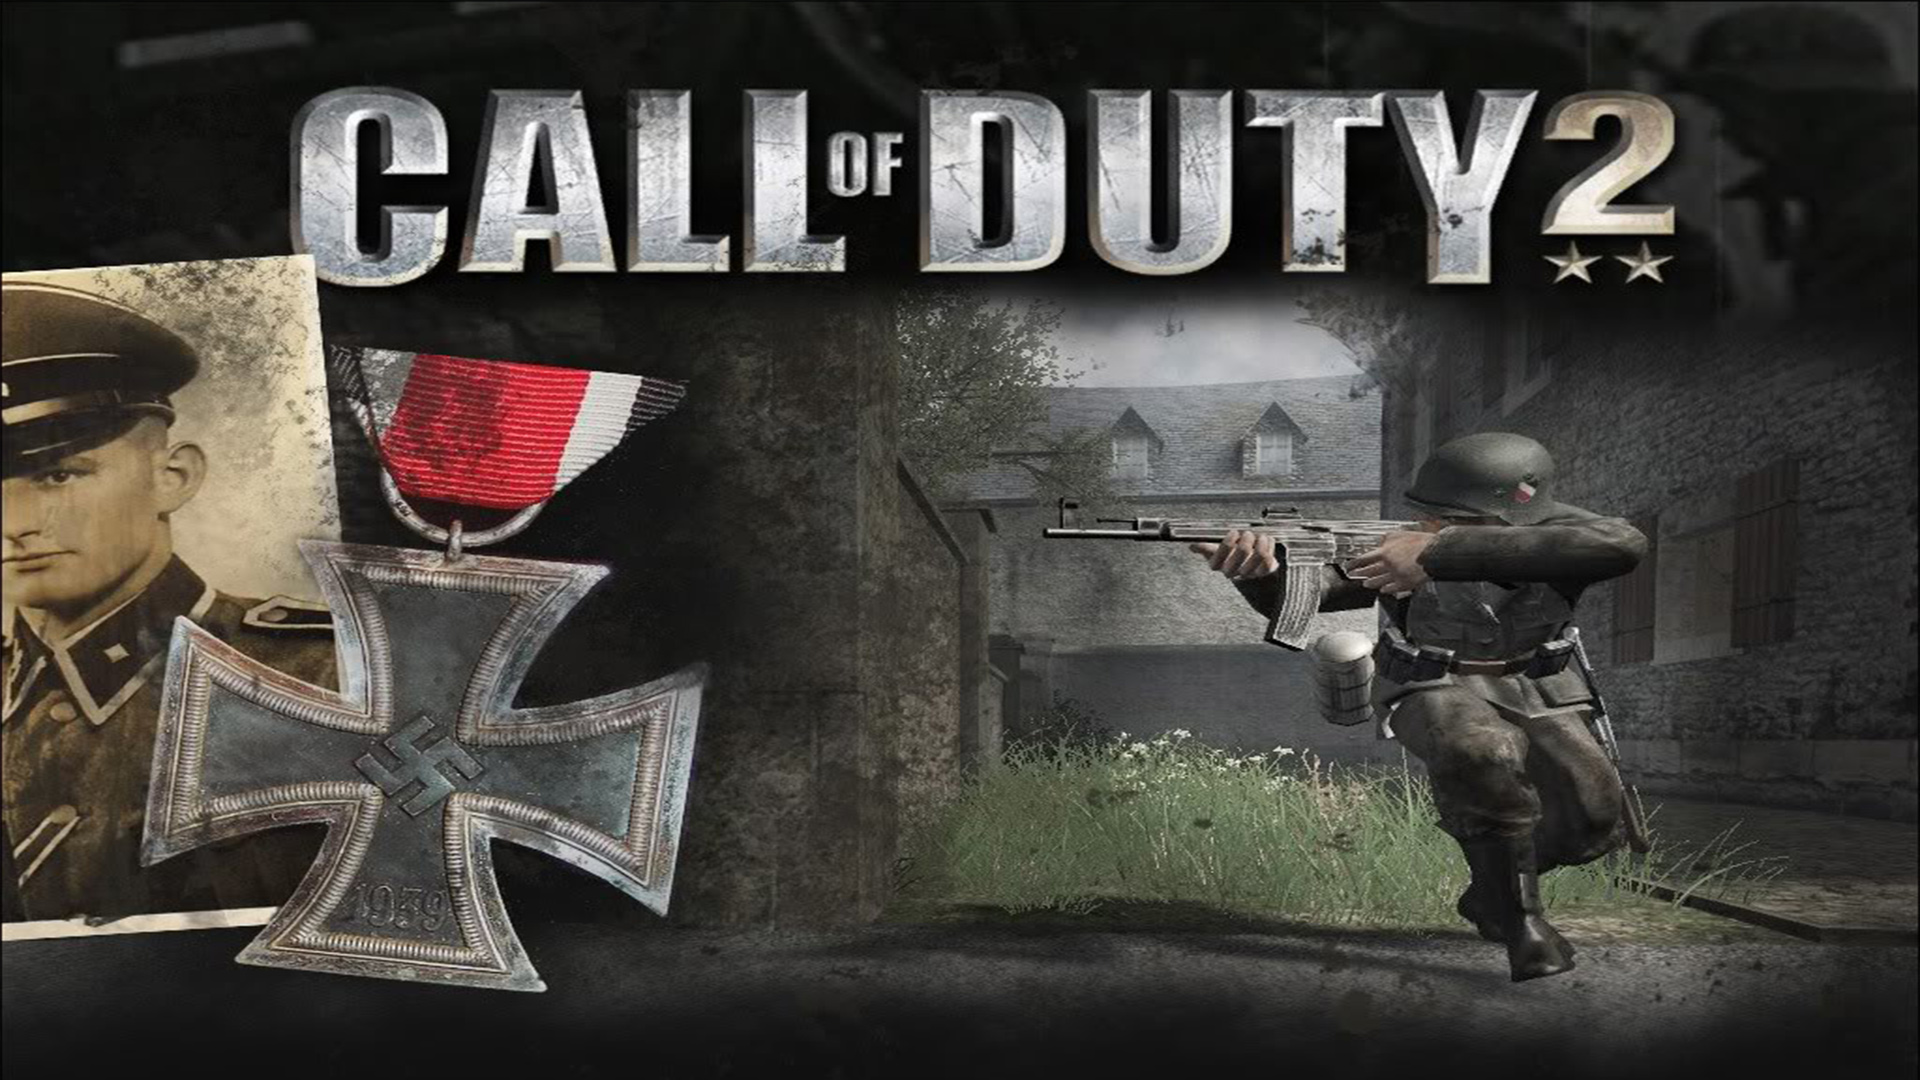 Call of Duty 2 HD Wallpaper Background Image 1920x1080 ID 1920x1080